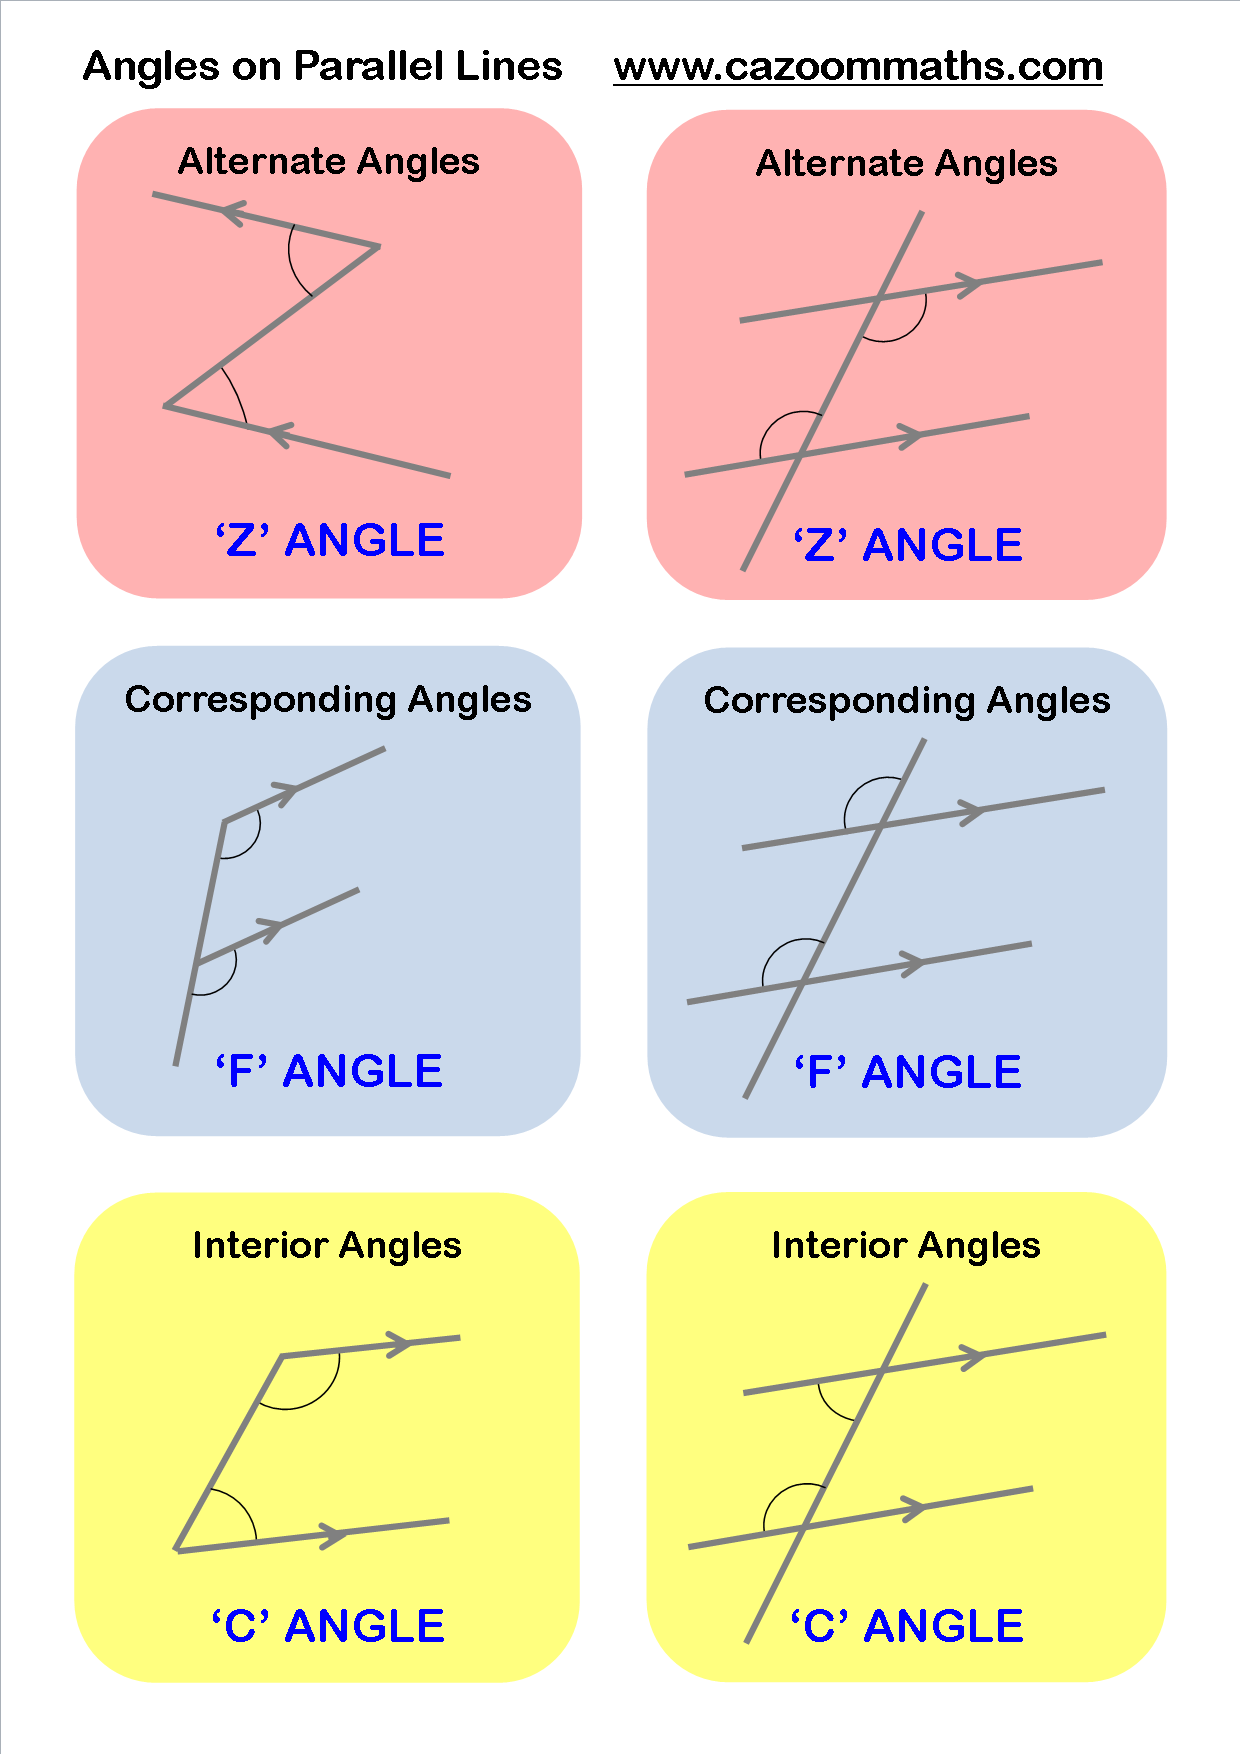 Angles on Parallel Lines | mathematique | Pinterest | Maths, Math ...